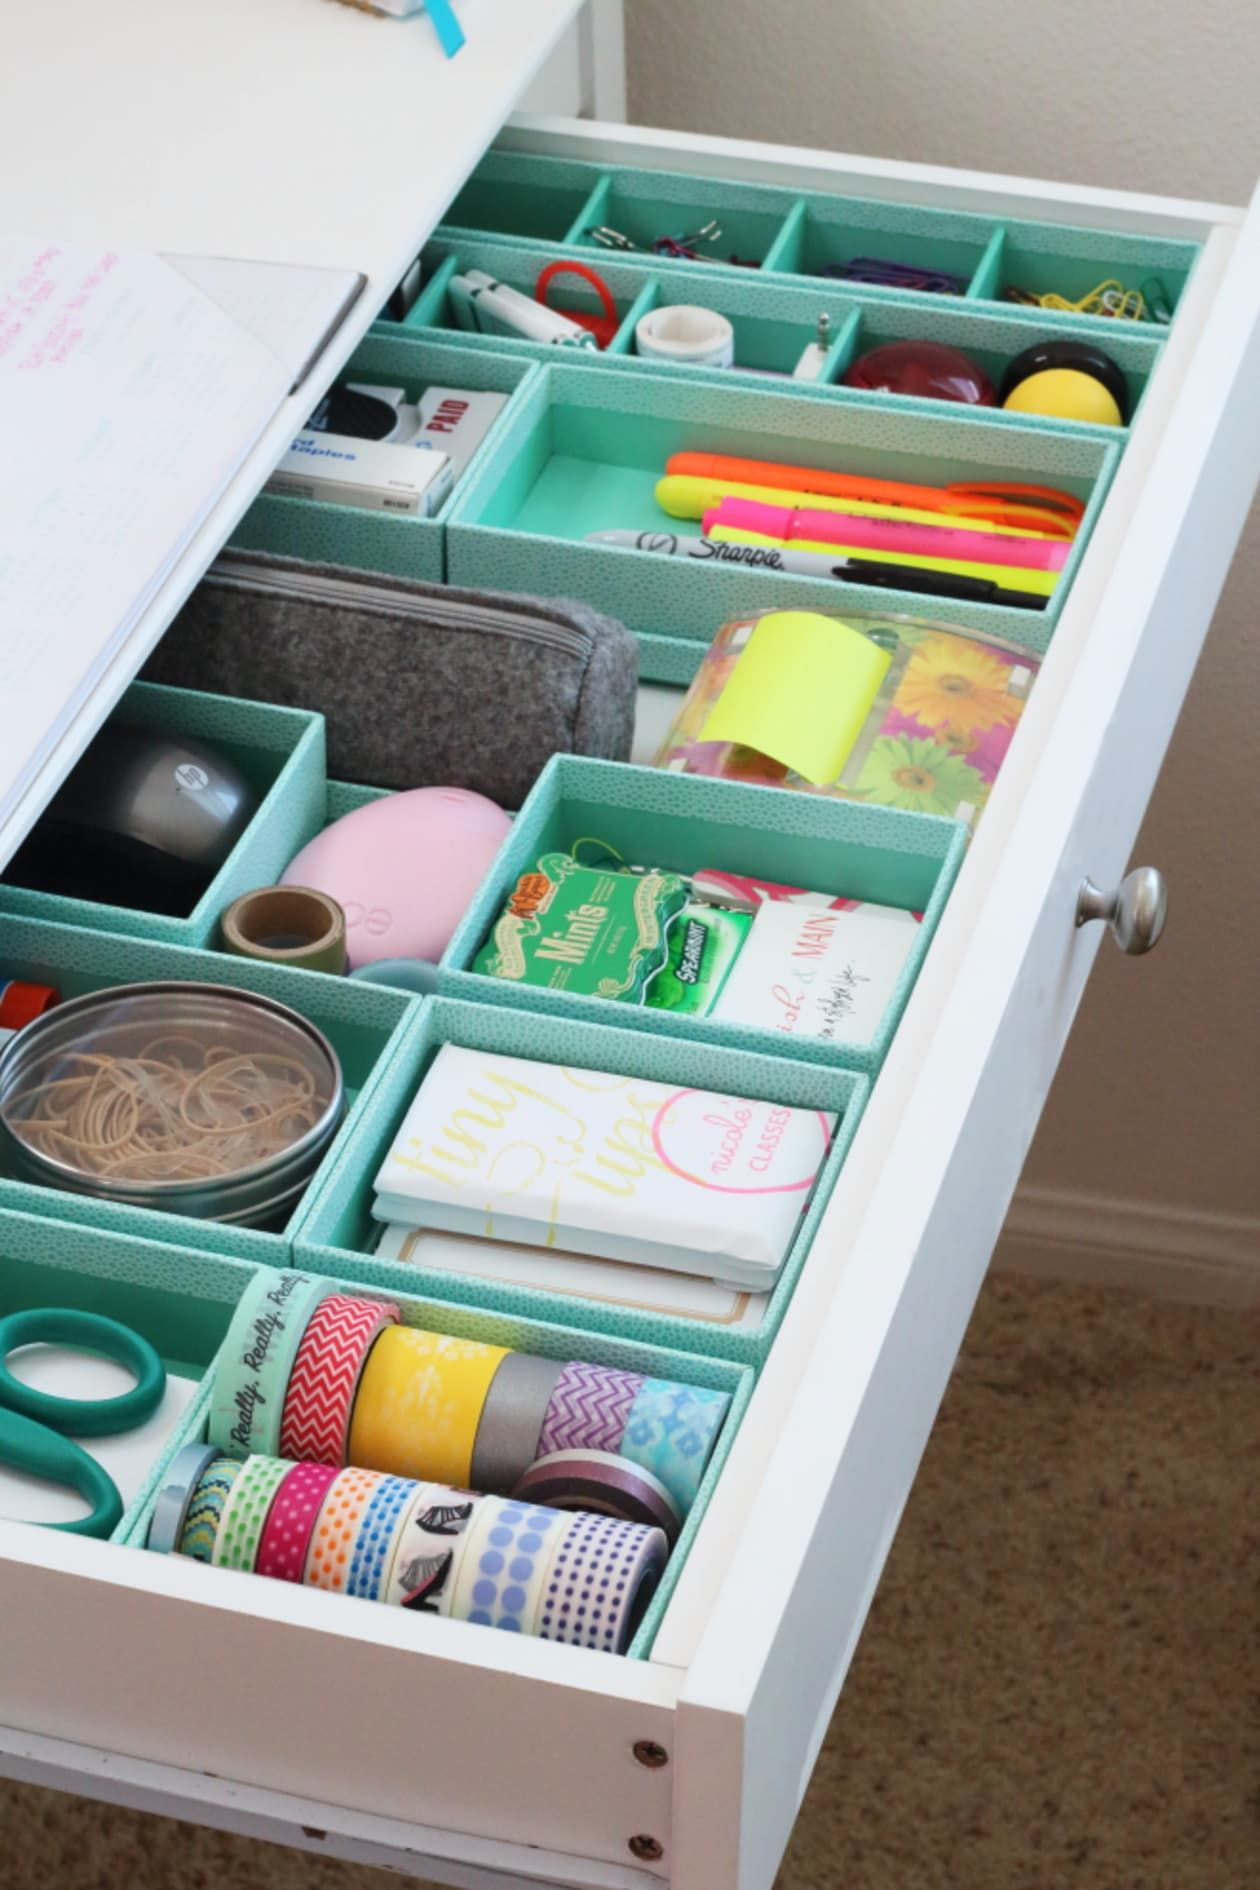 The 10 Most Organized Drawers On The Internet Desk Organization Diy Desk Drawer Organisation Desk Organization Tips